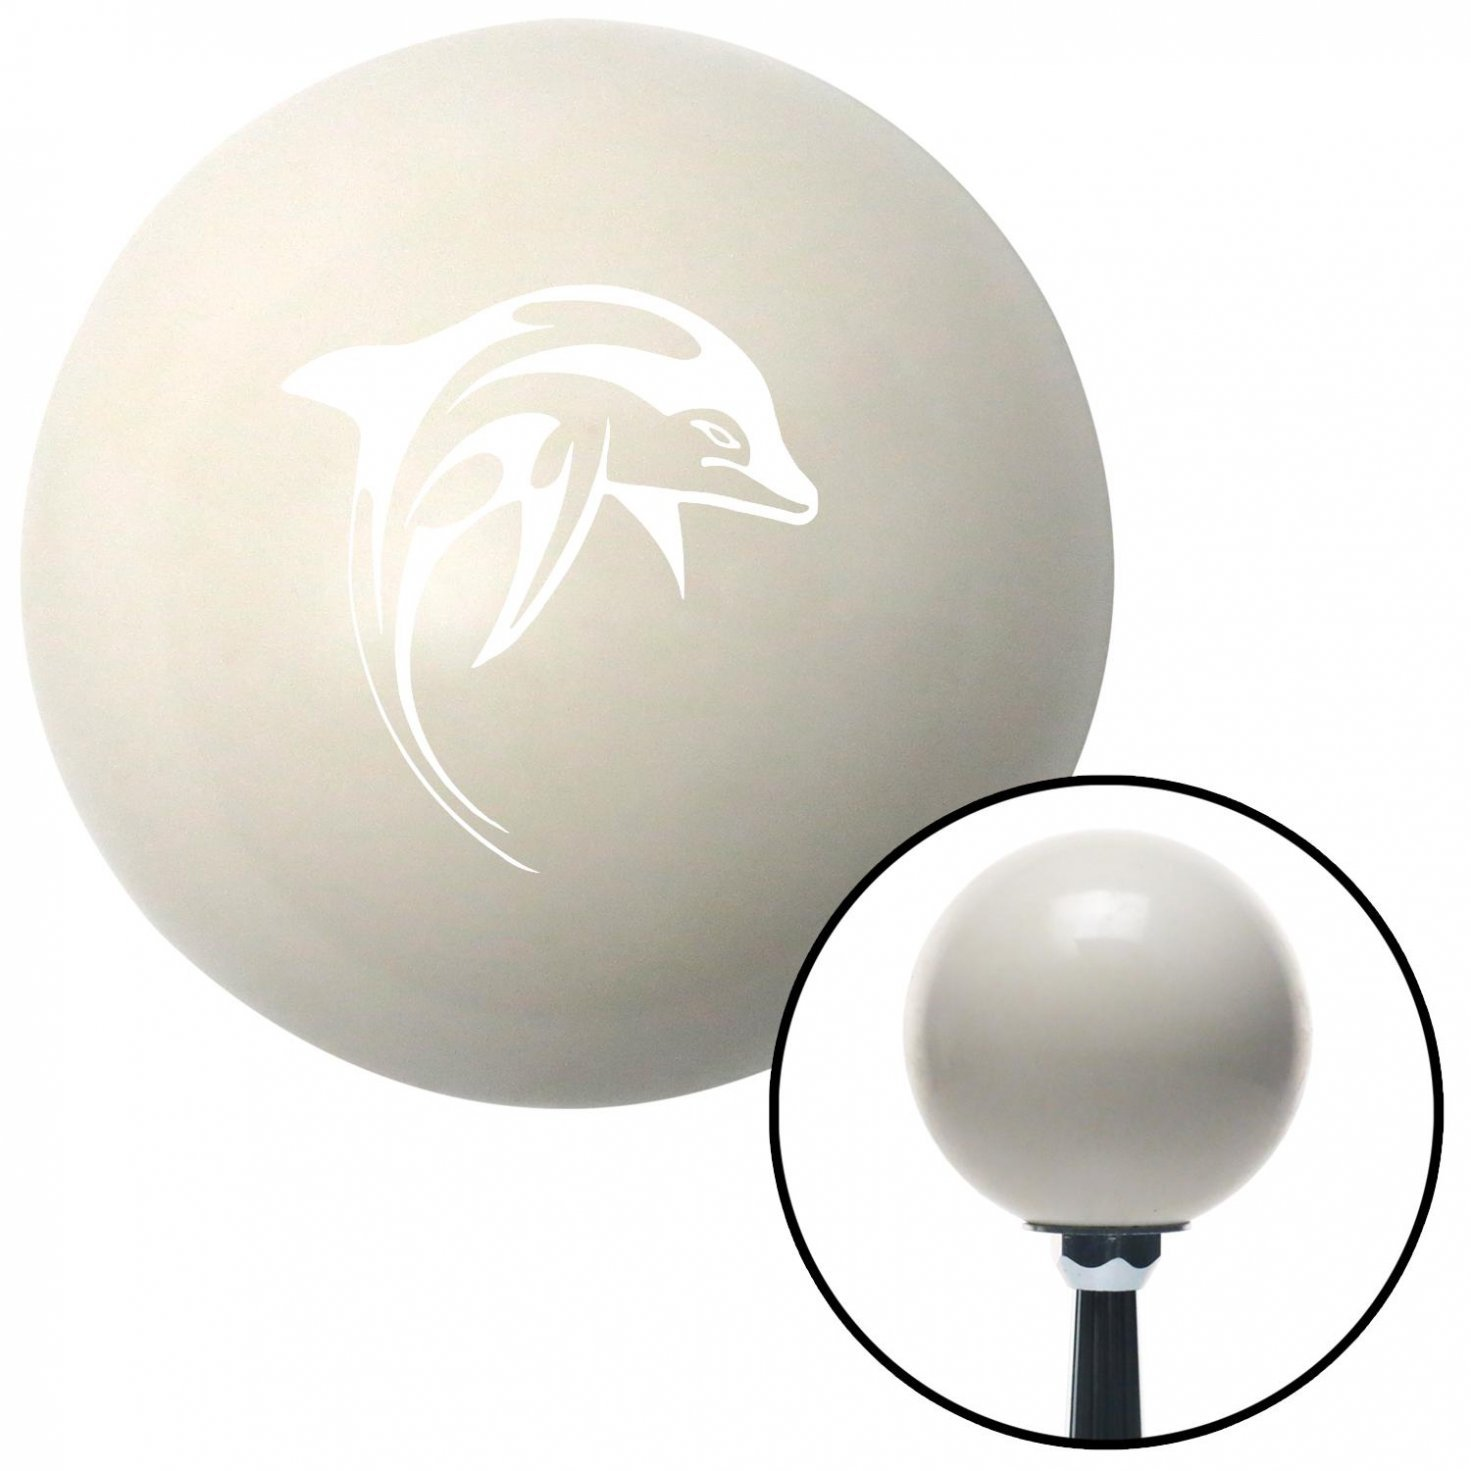 American Shifter 34841 Ivory Shift Knob with 16mm x 1.5 Insert White Artistic Dolphin